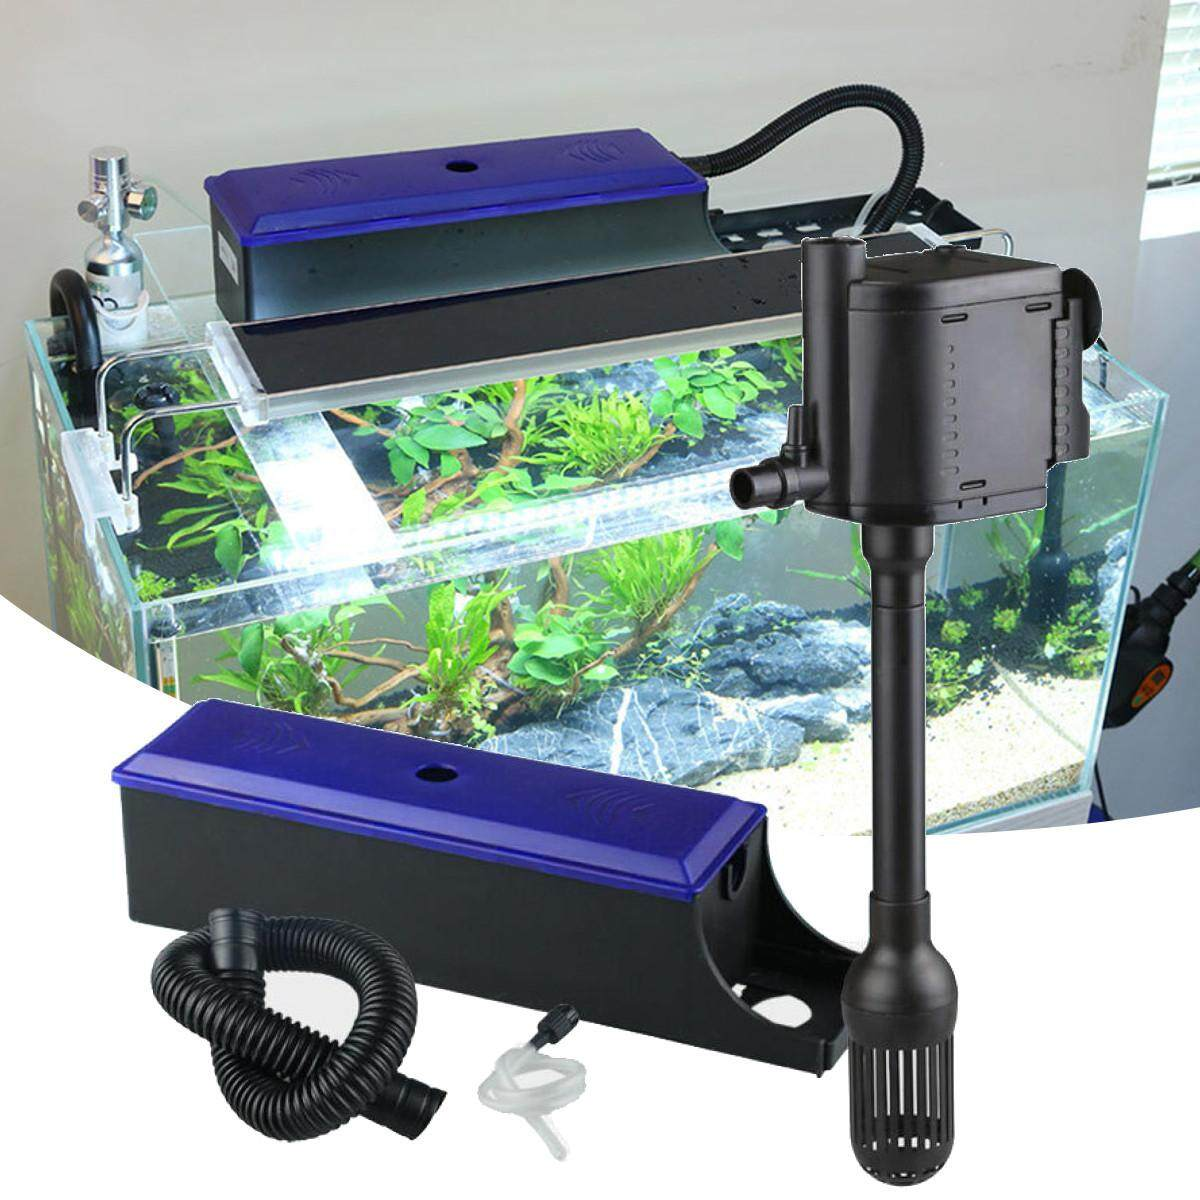 350/650L/H Aquarium External Water Filter Trickle Upper Fish Tank with Pump # JS-600 - intl